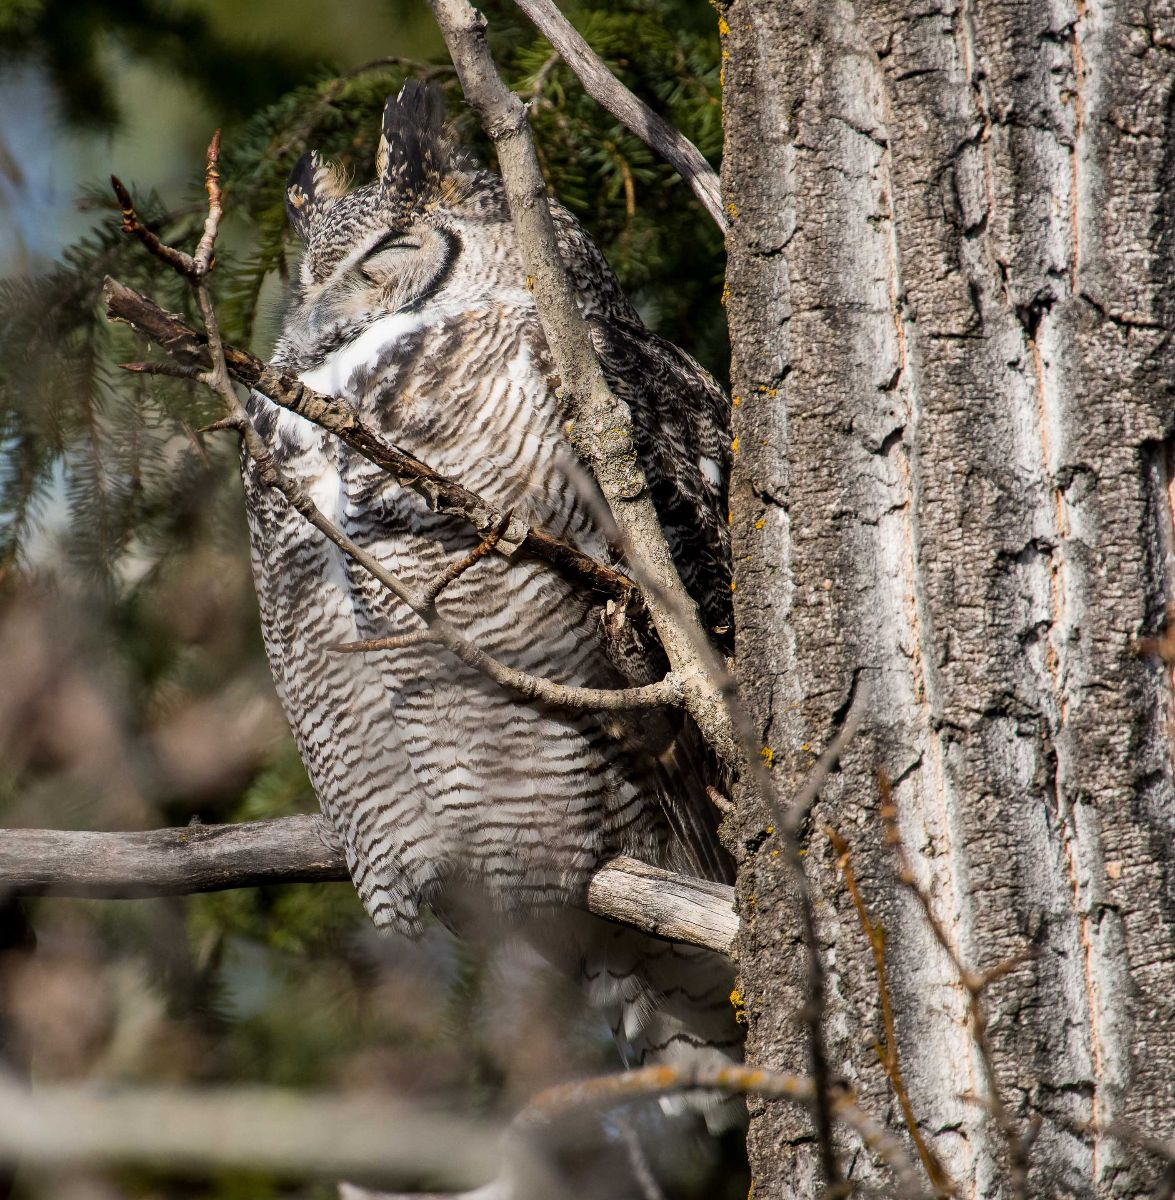 151026 - Great Horned Owl sleeping